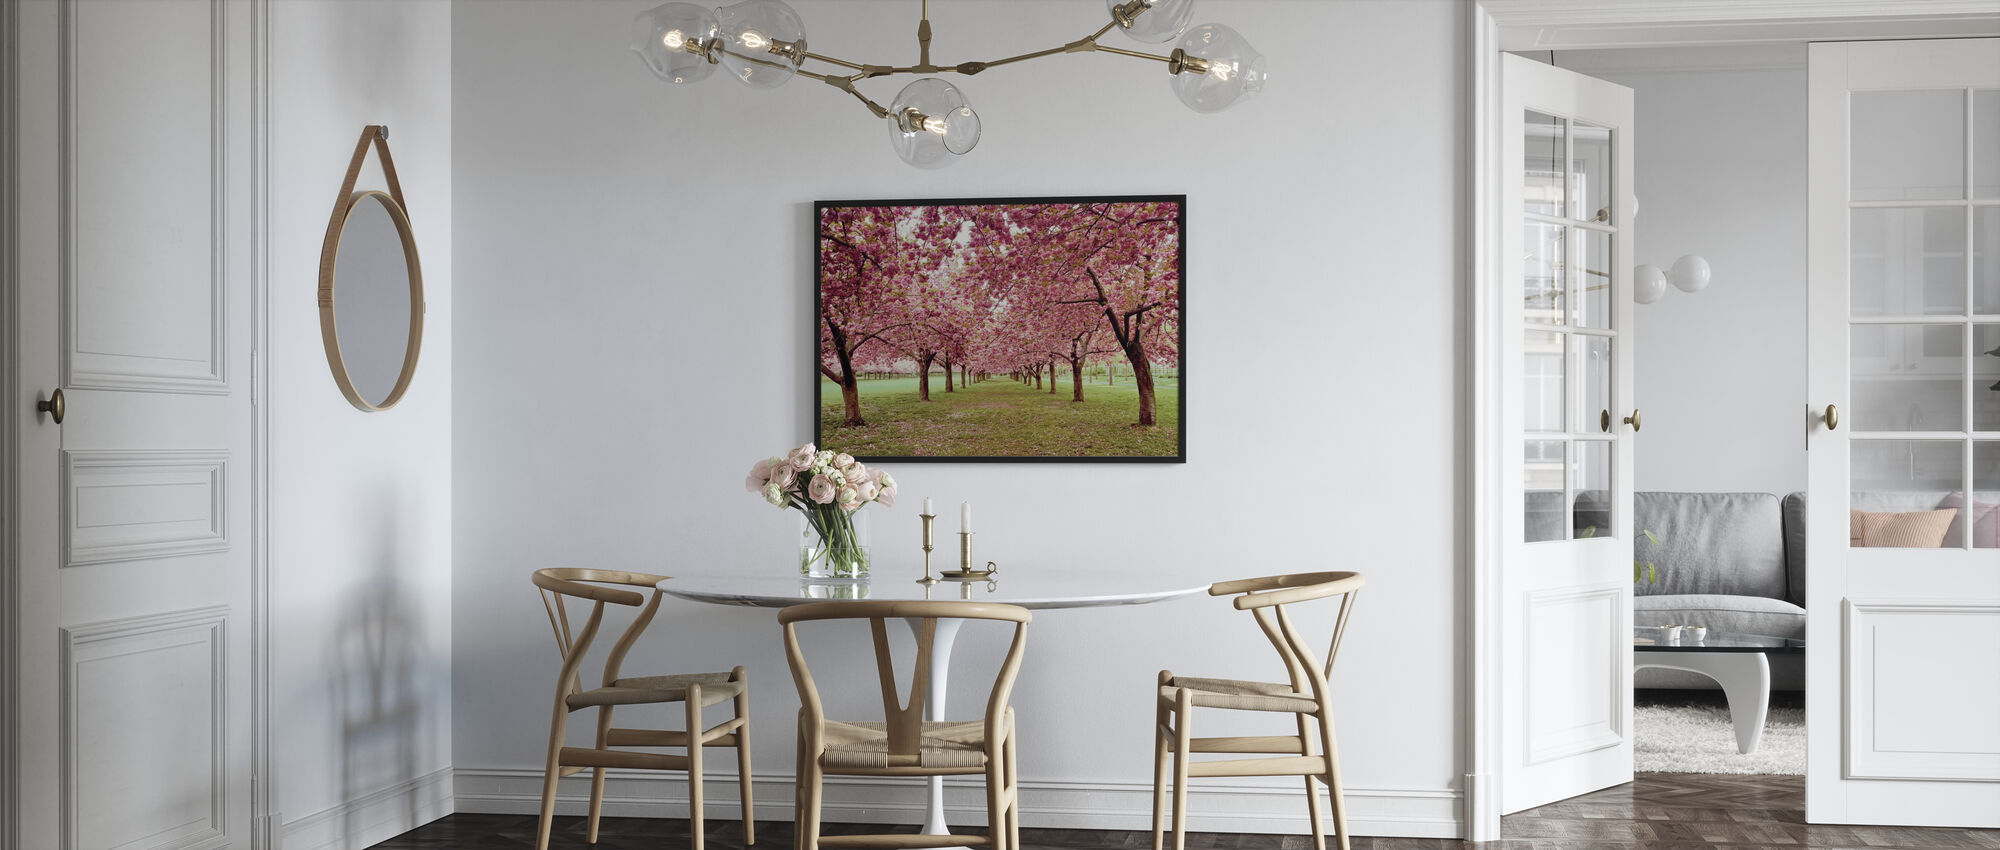 Hall of Cherries - Framed print - Kitchen